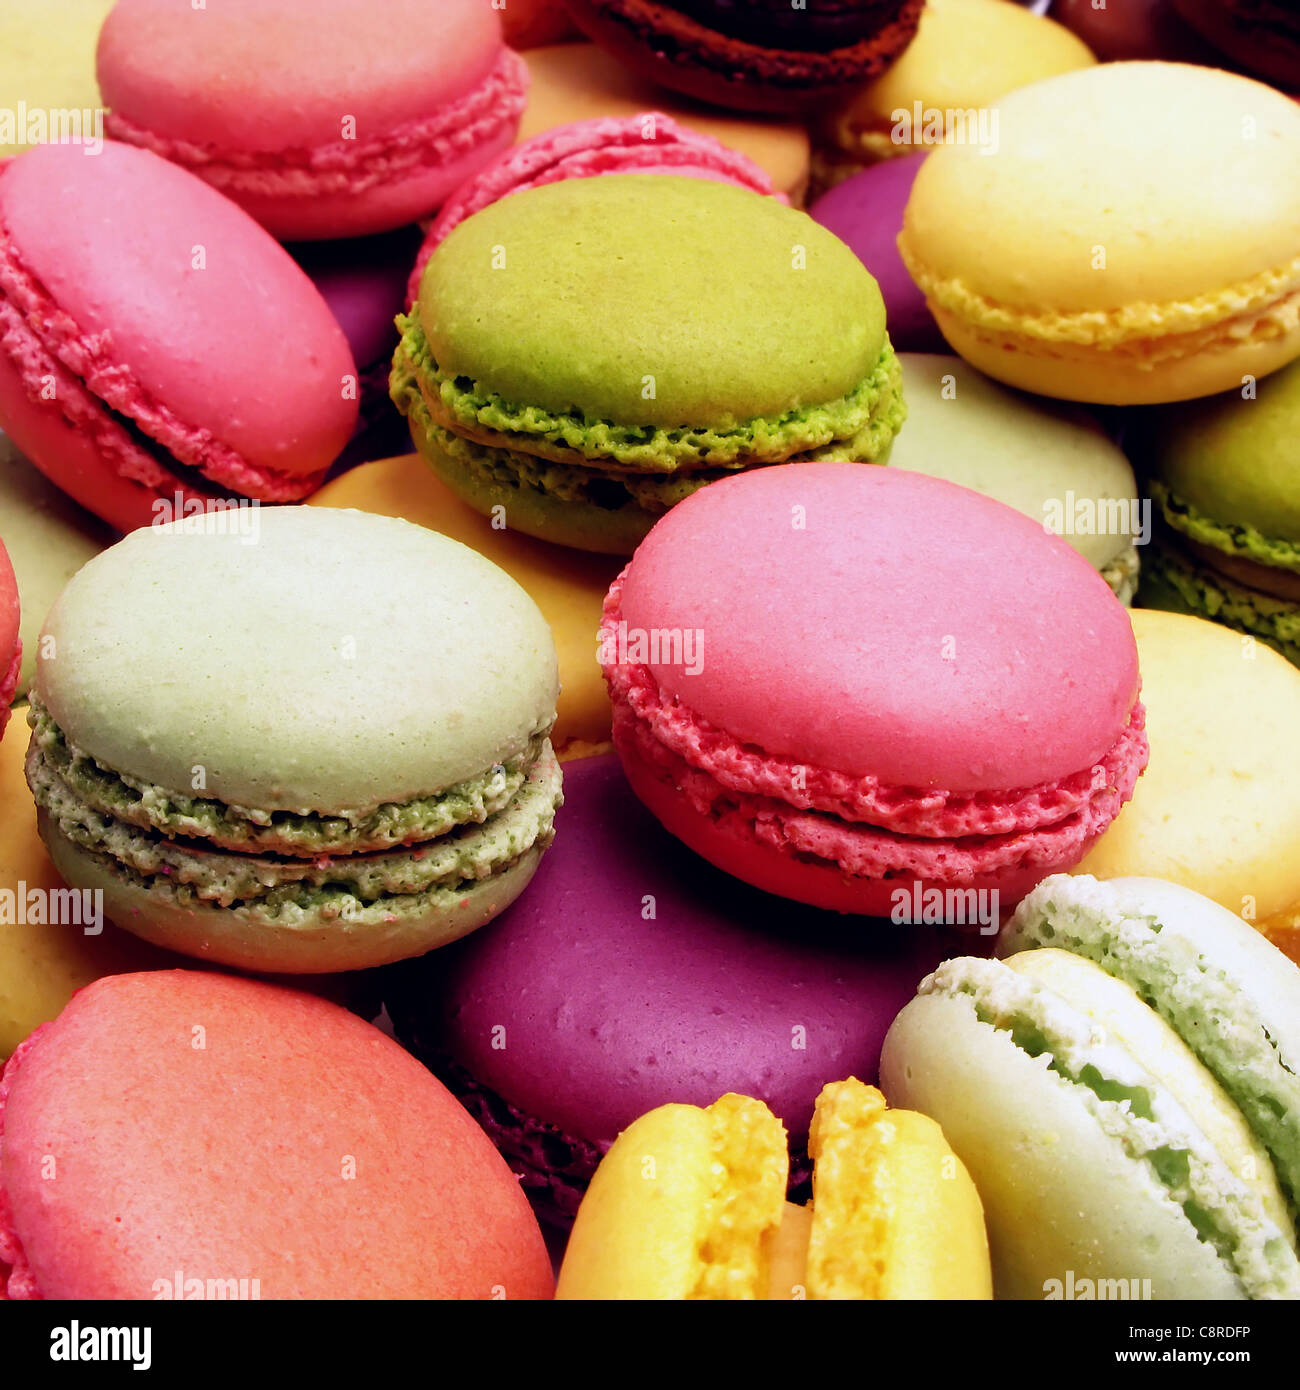 assortment of macaroons - Stock Image